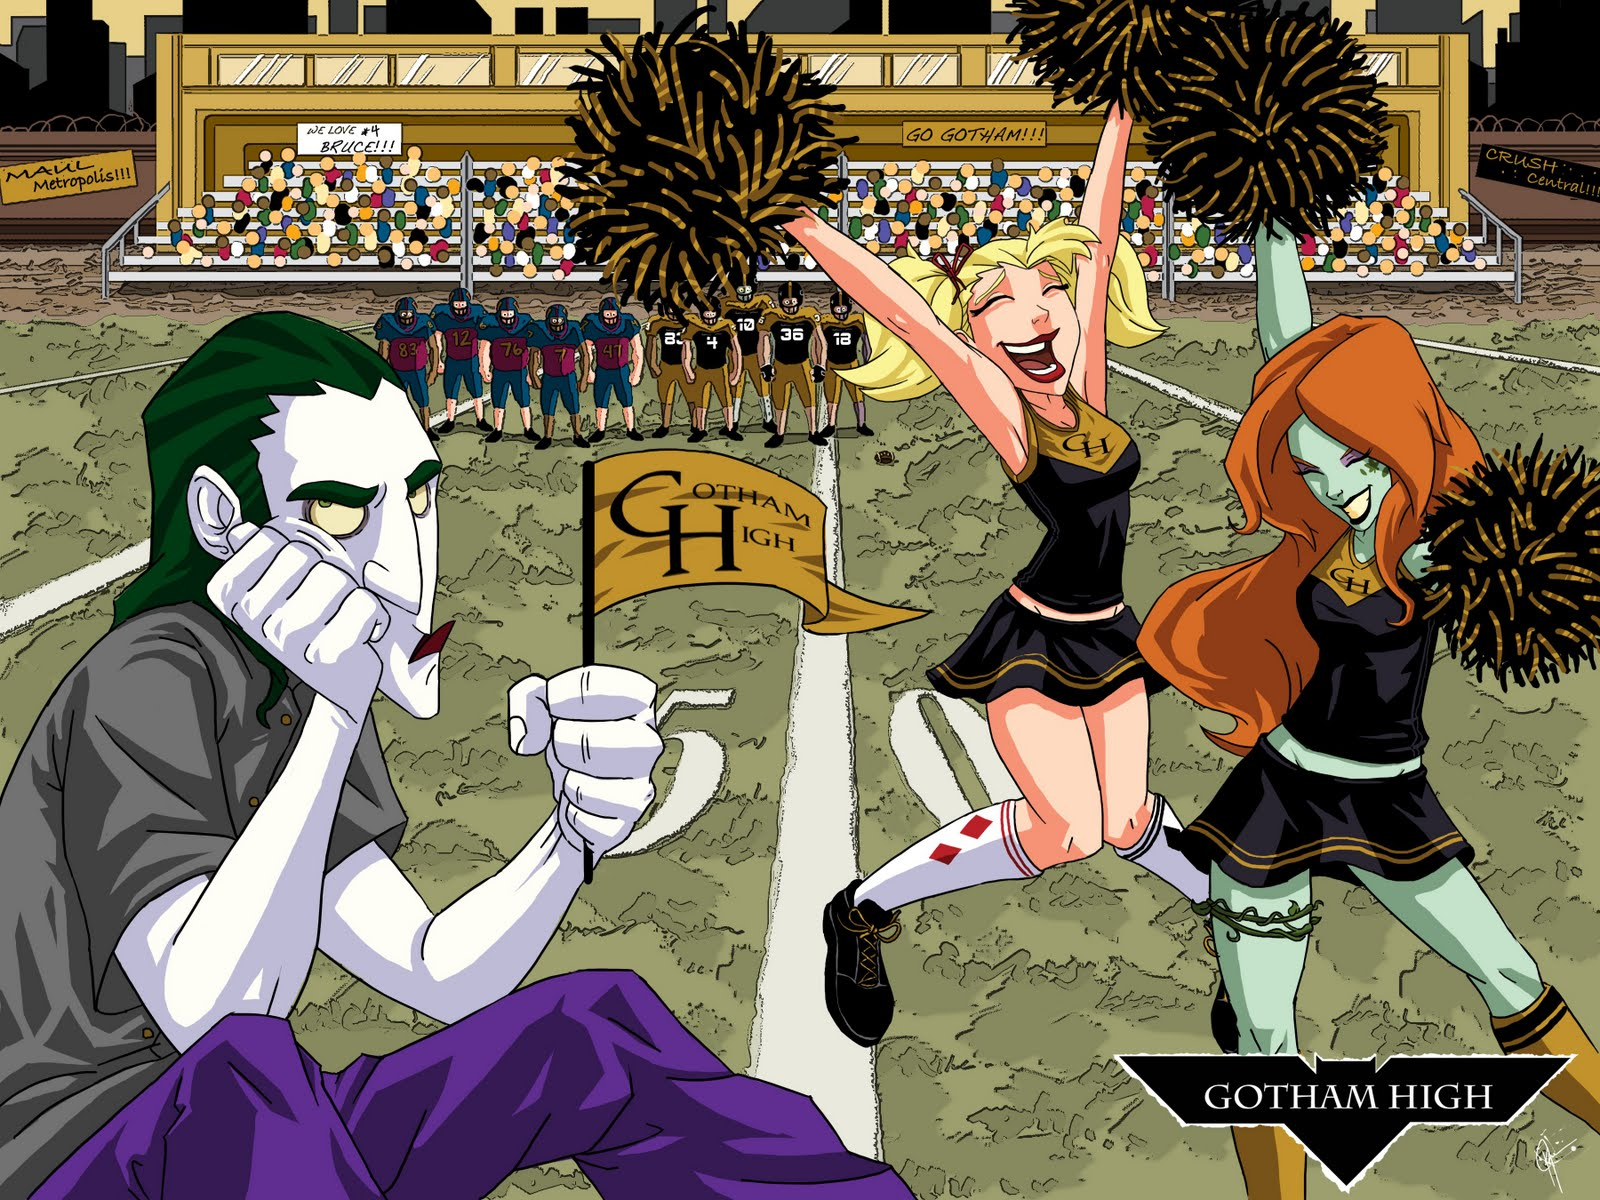 002-batman-gotham-high-cancelled_project-School_Spirit.Ivy...jpg